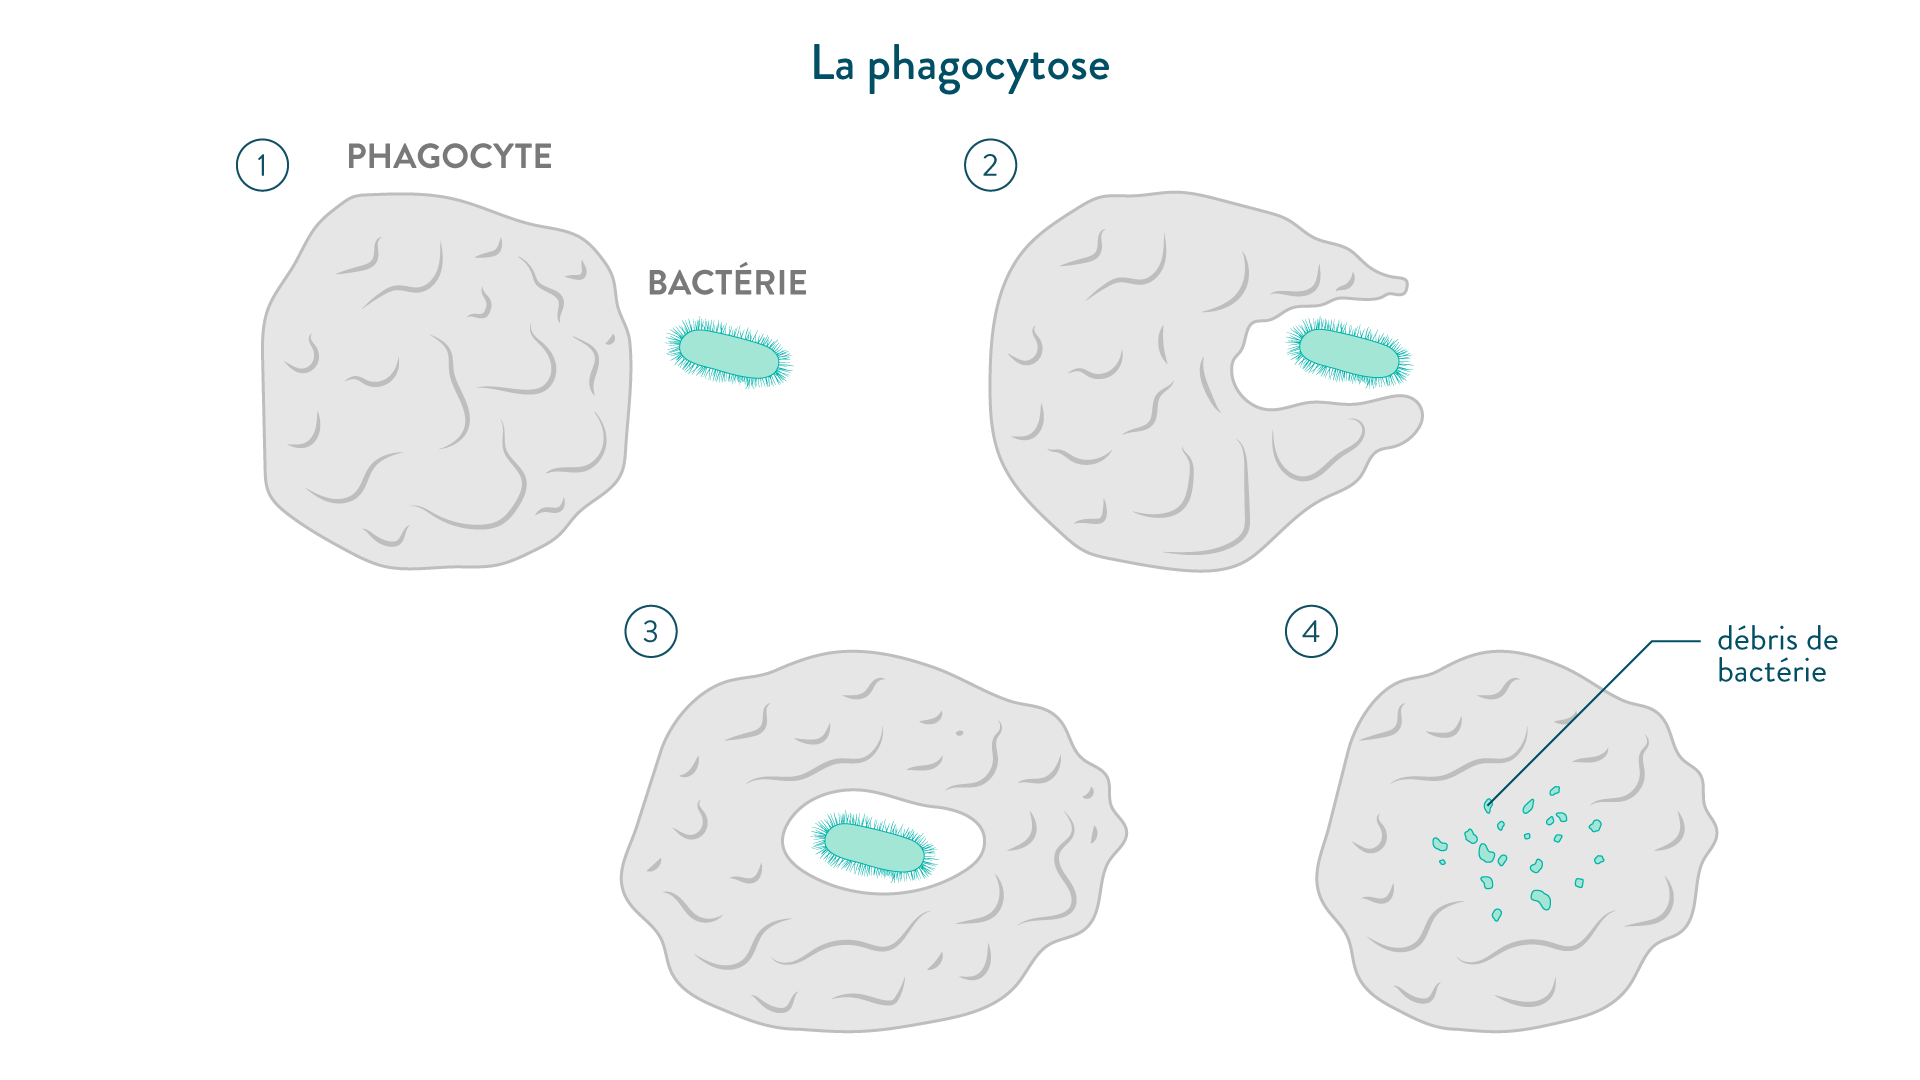 La phagocytose